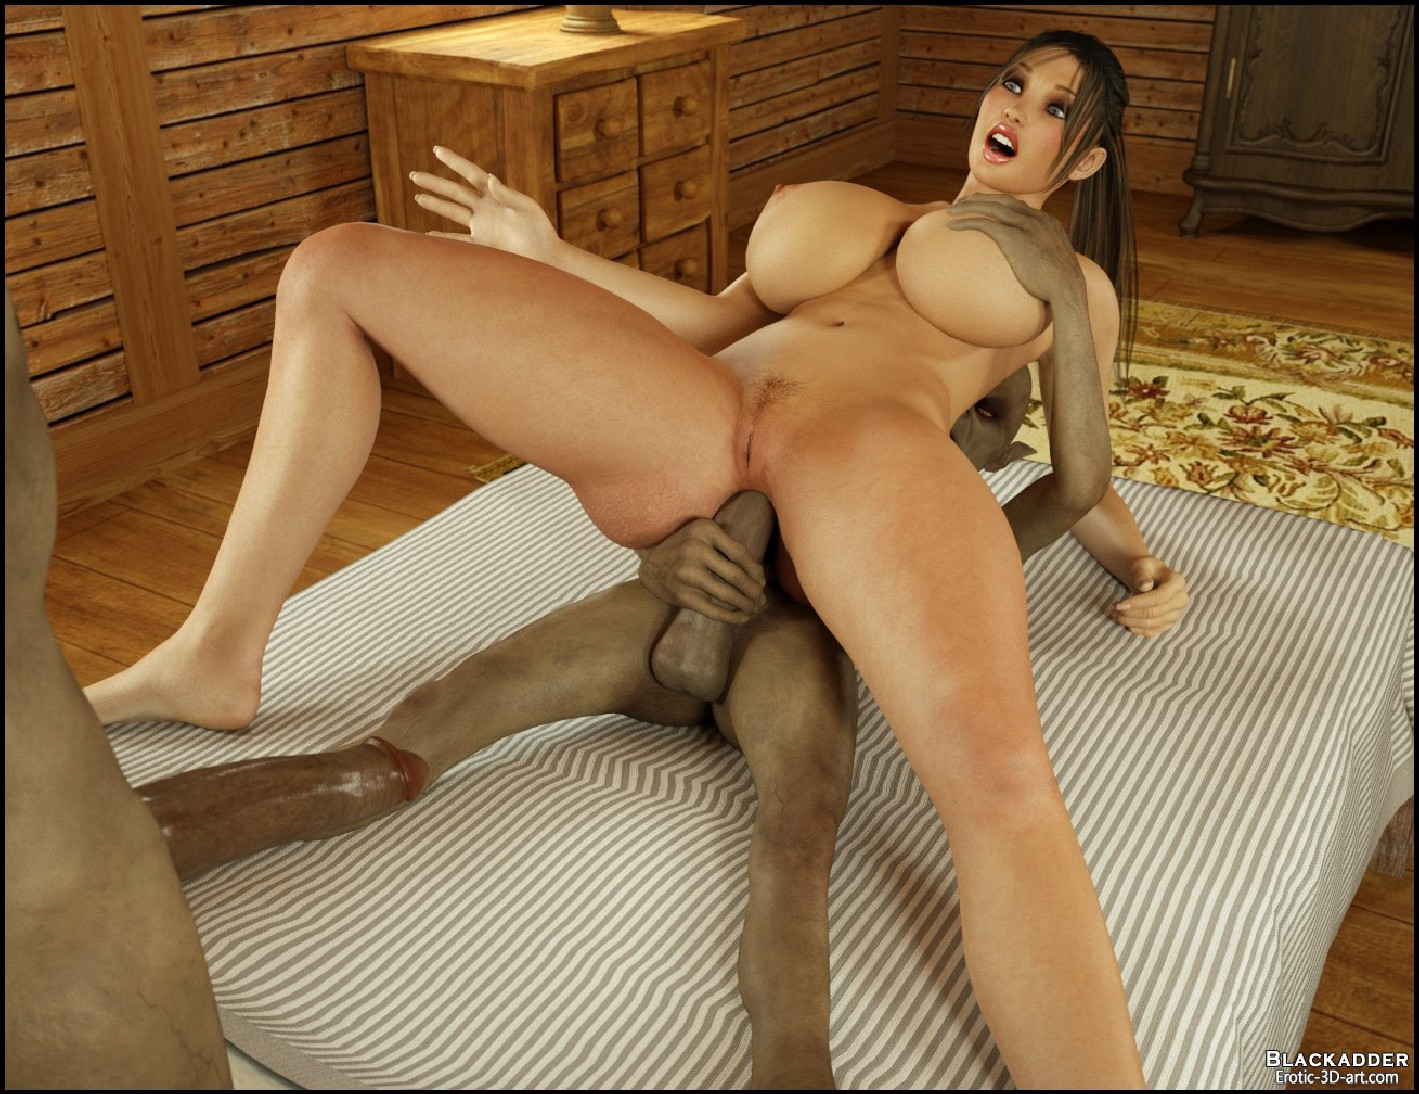 Xxx evil monster fuck lara croft naked picture